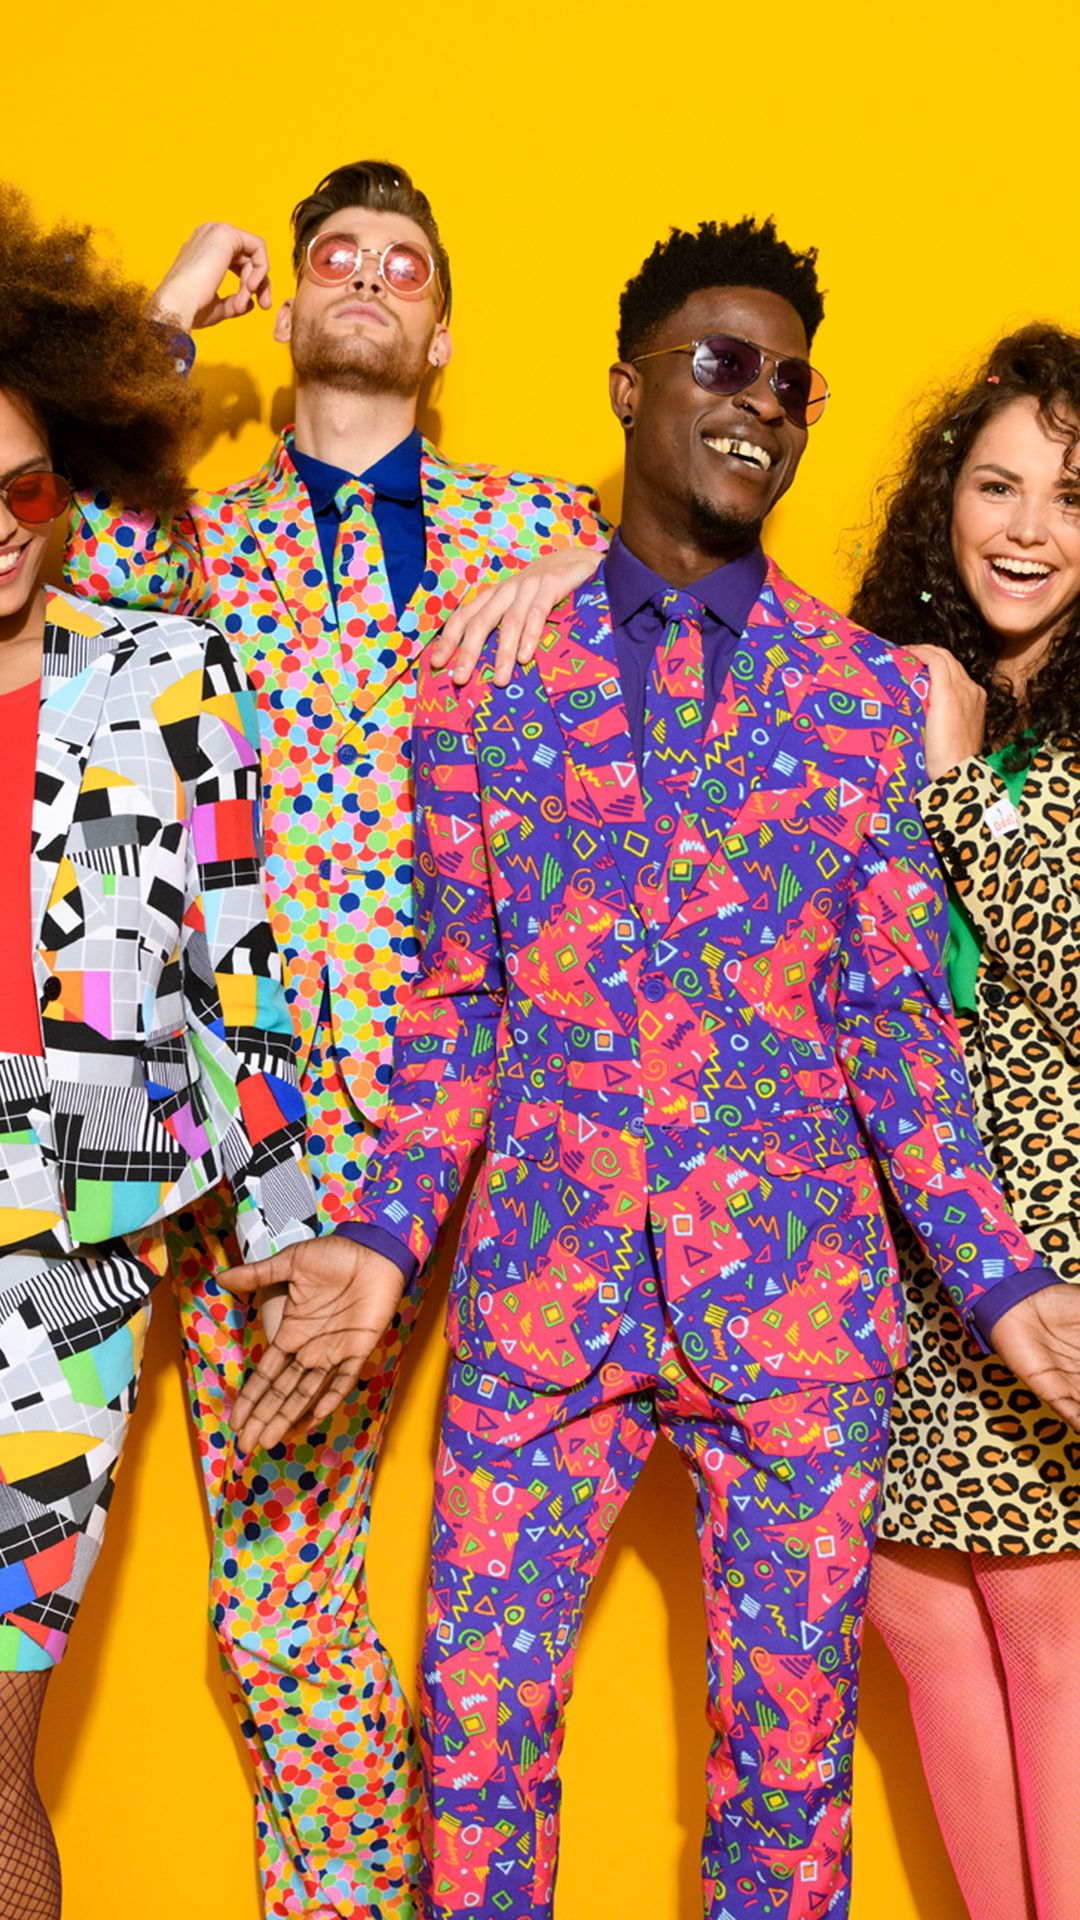 Office Party Ideas With The Suits From Opposuits Psychedelic Fashion Party Outfits For Women Diy Party Costumes